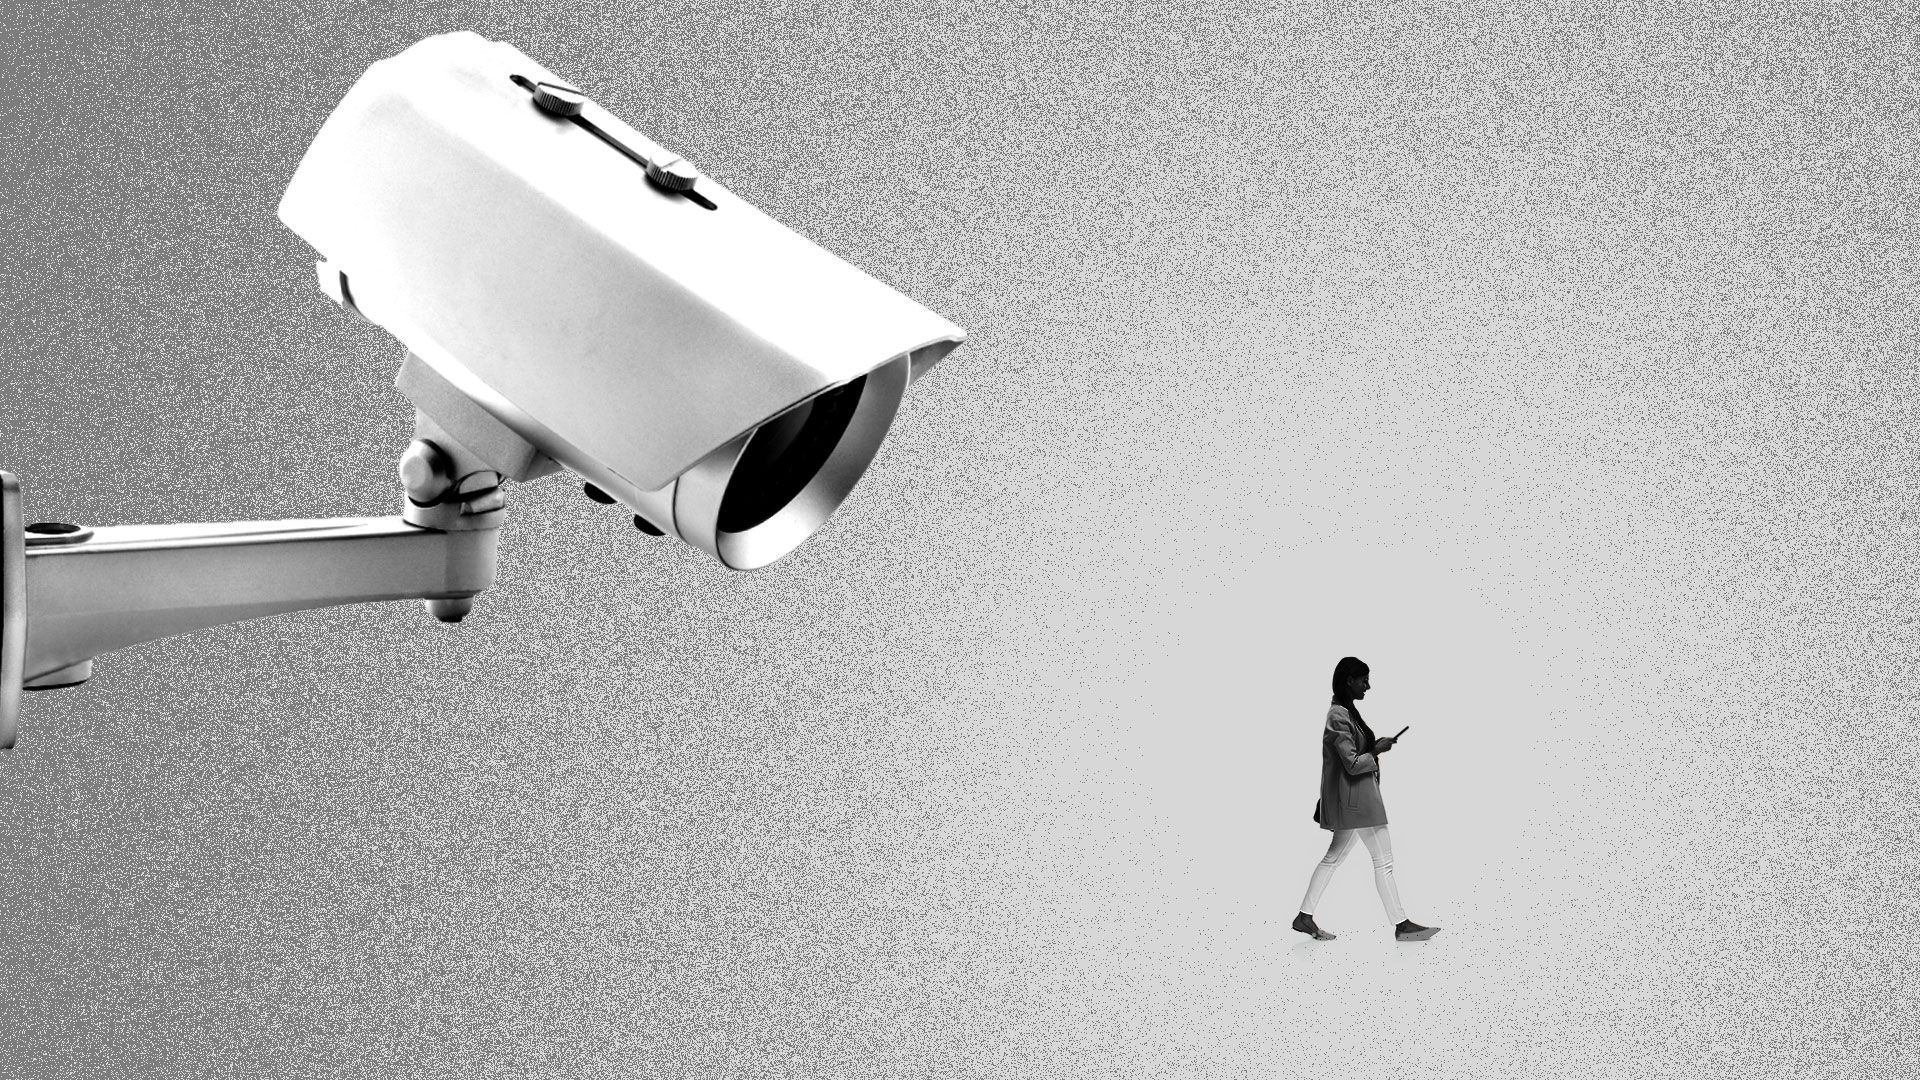 Illustration of a giant security camera watching a small person on their cell phone.